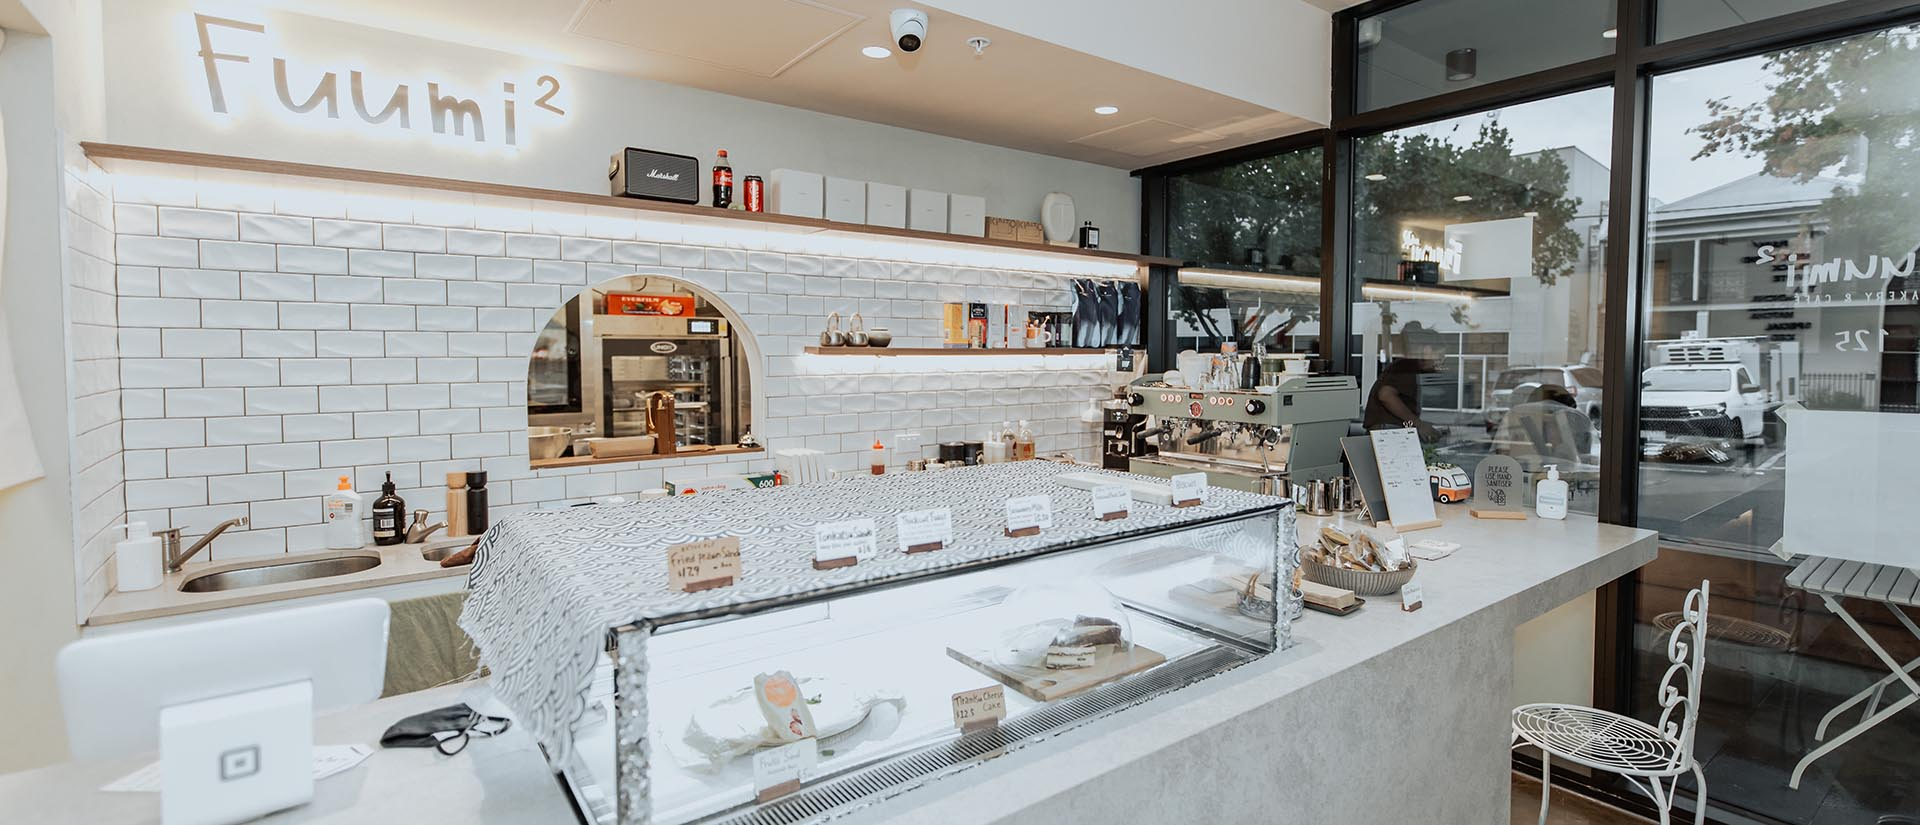 Projects-CafeCafe-Fuumi 3